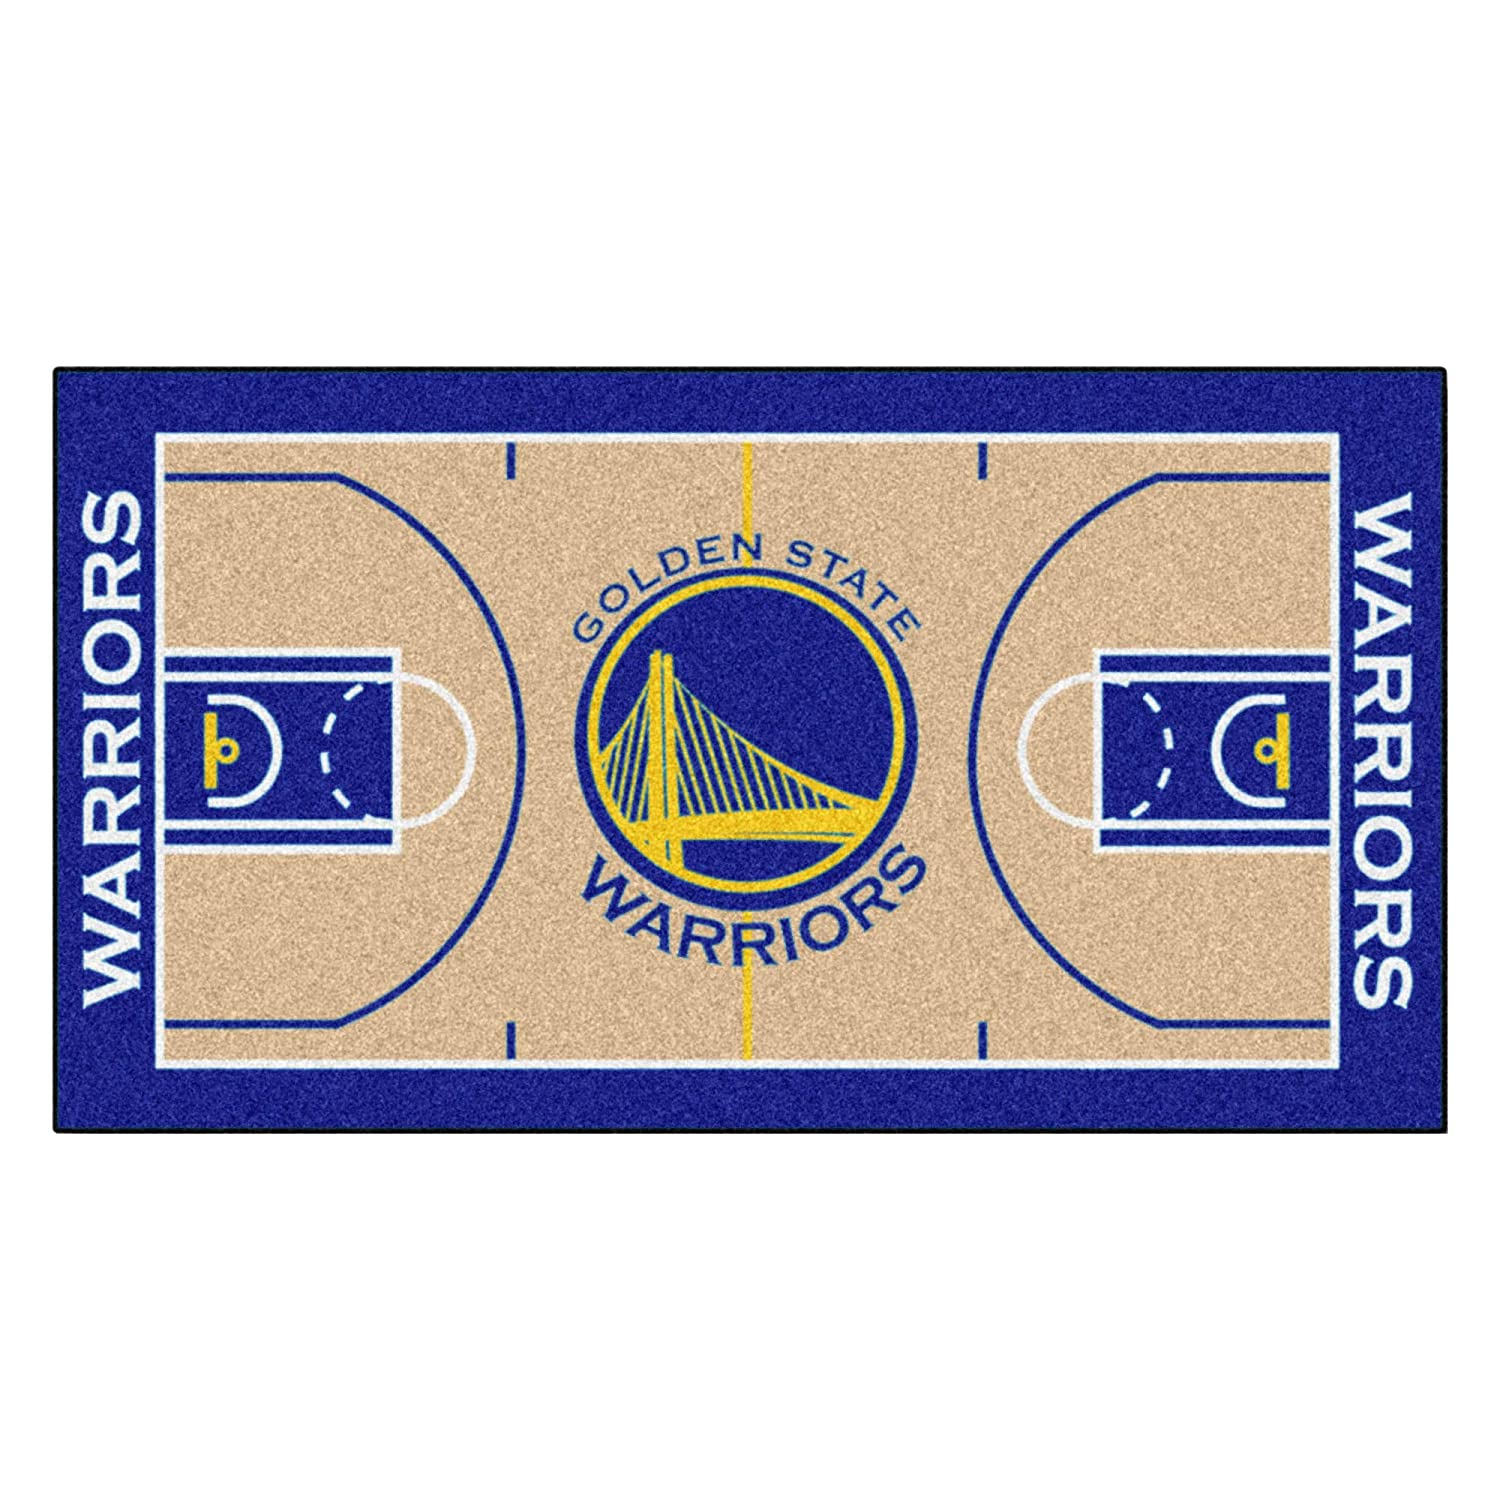 FANMATS9264NBA Golden State Warriors Nylon Face NBA Court Runner-Large